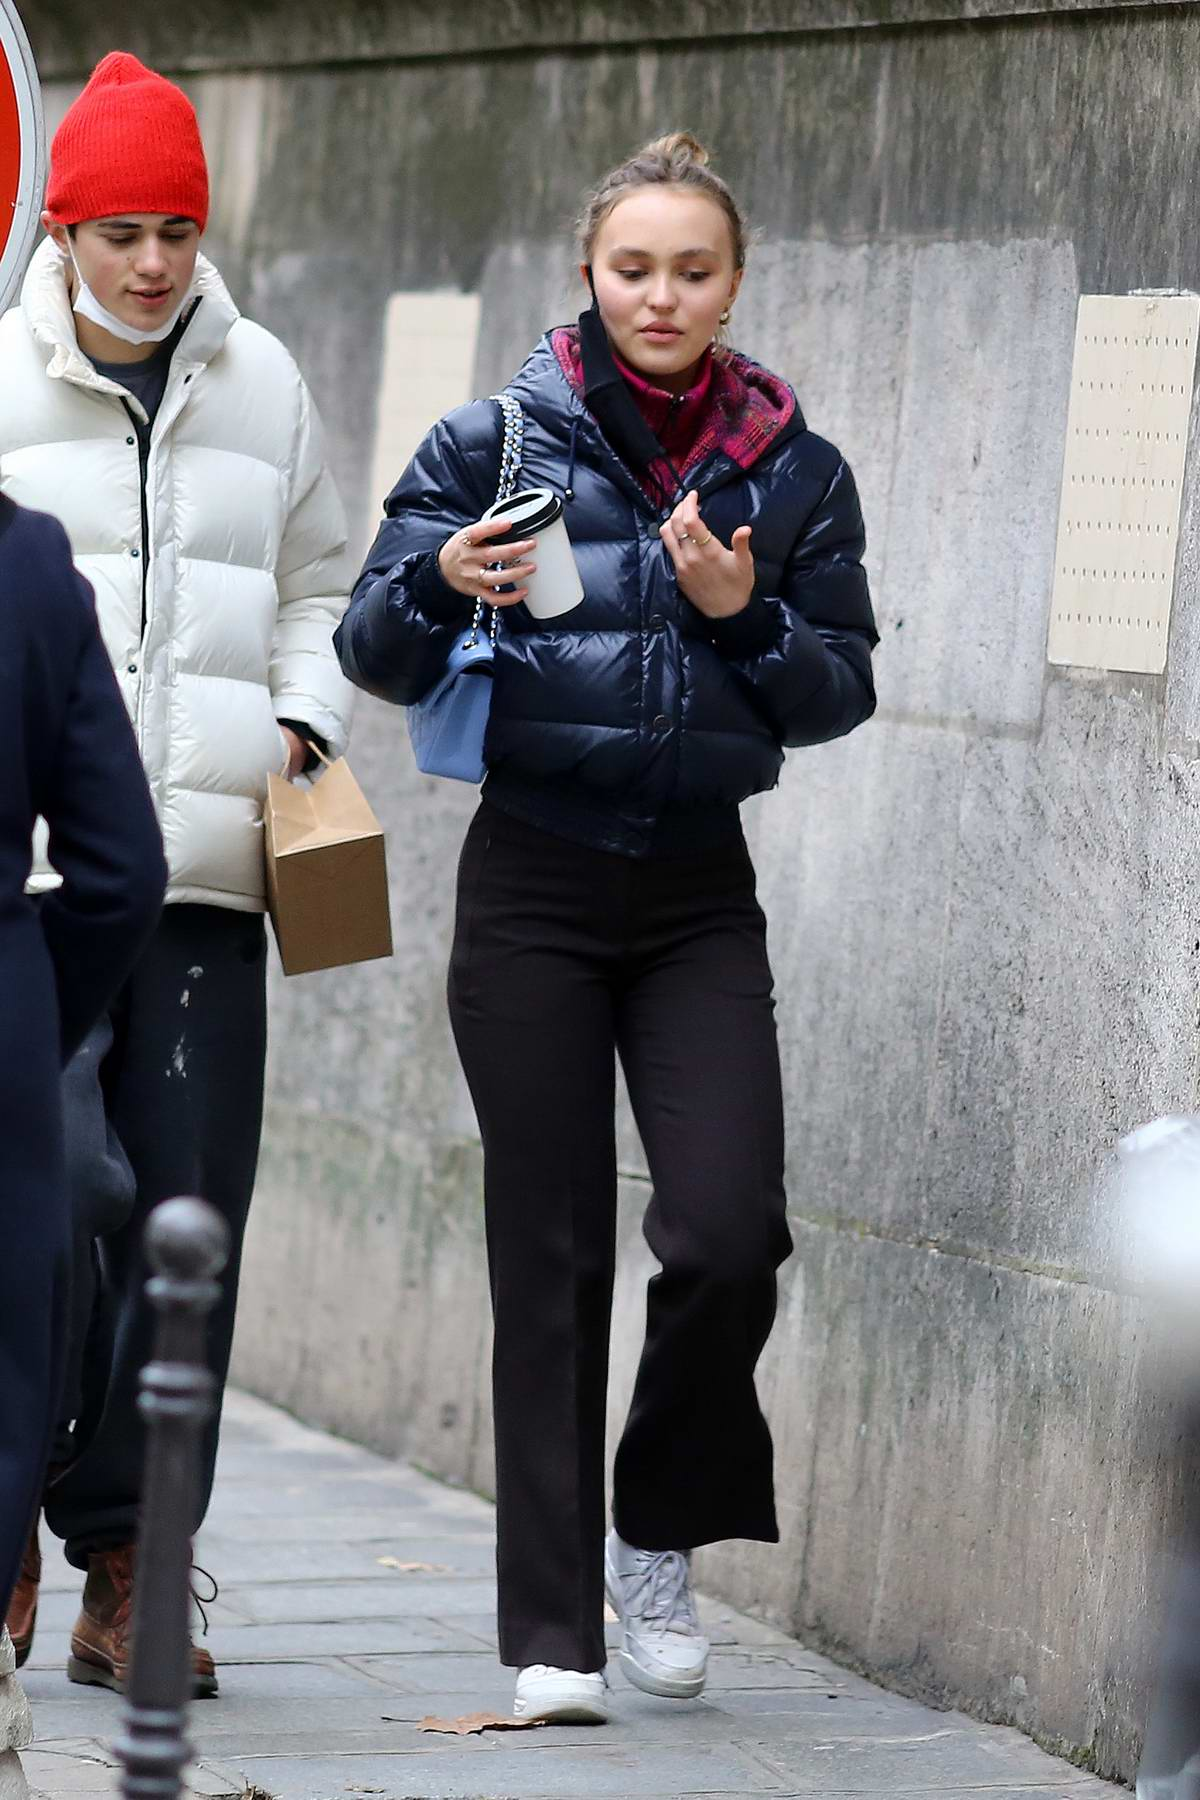 Lily-Rose Depp bundles up in a puffer jacket while out shopping with a male friend in Paris, France